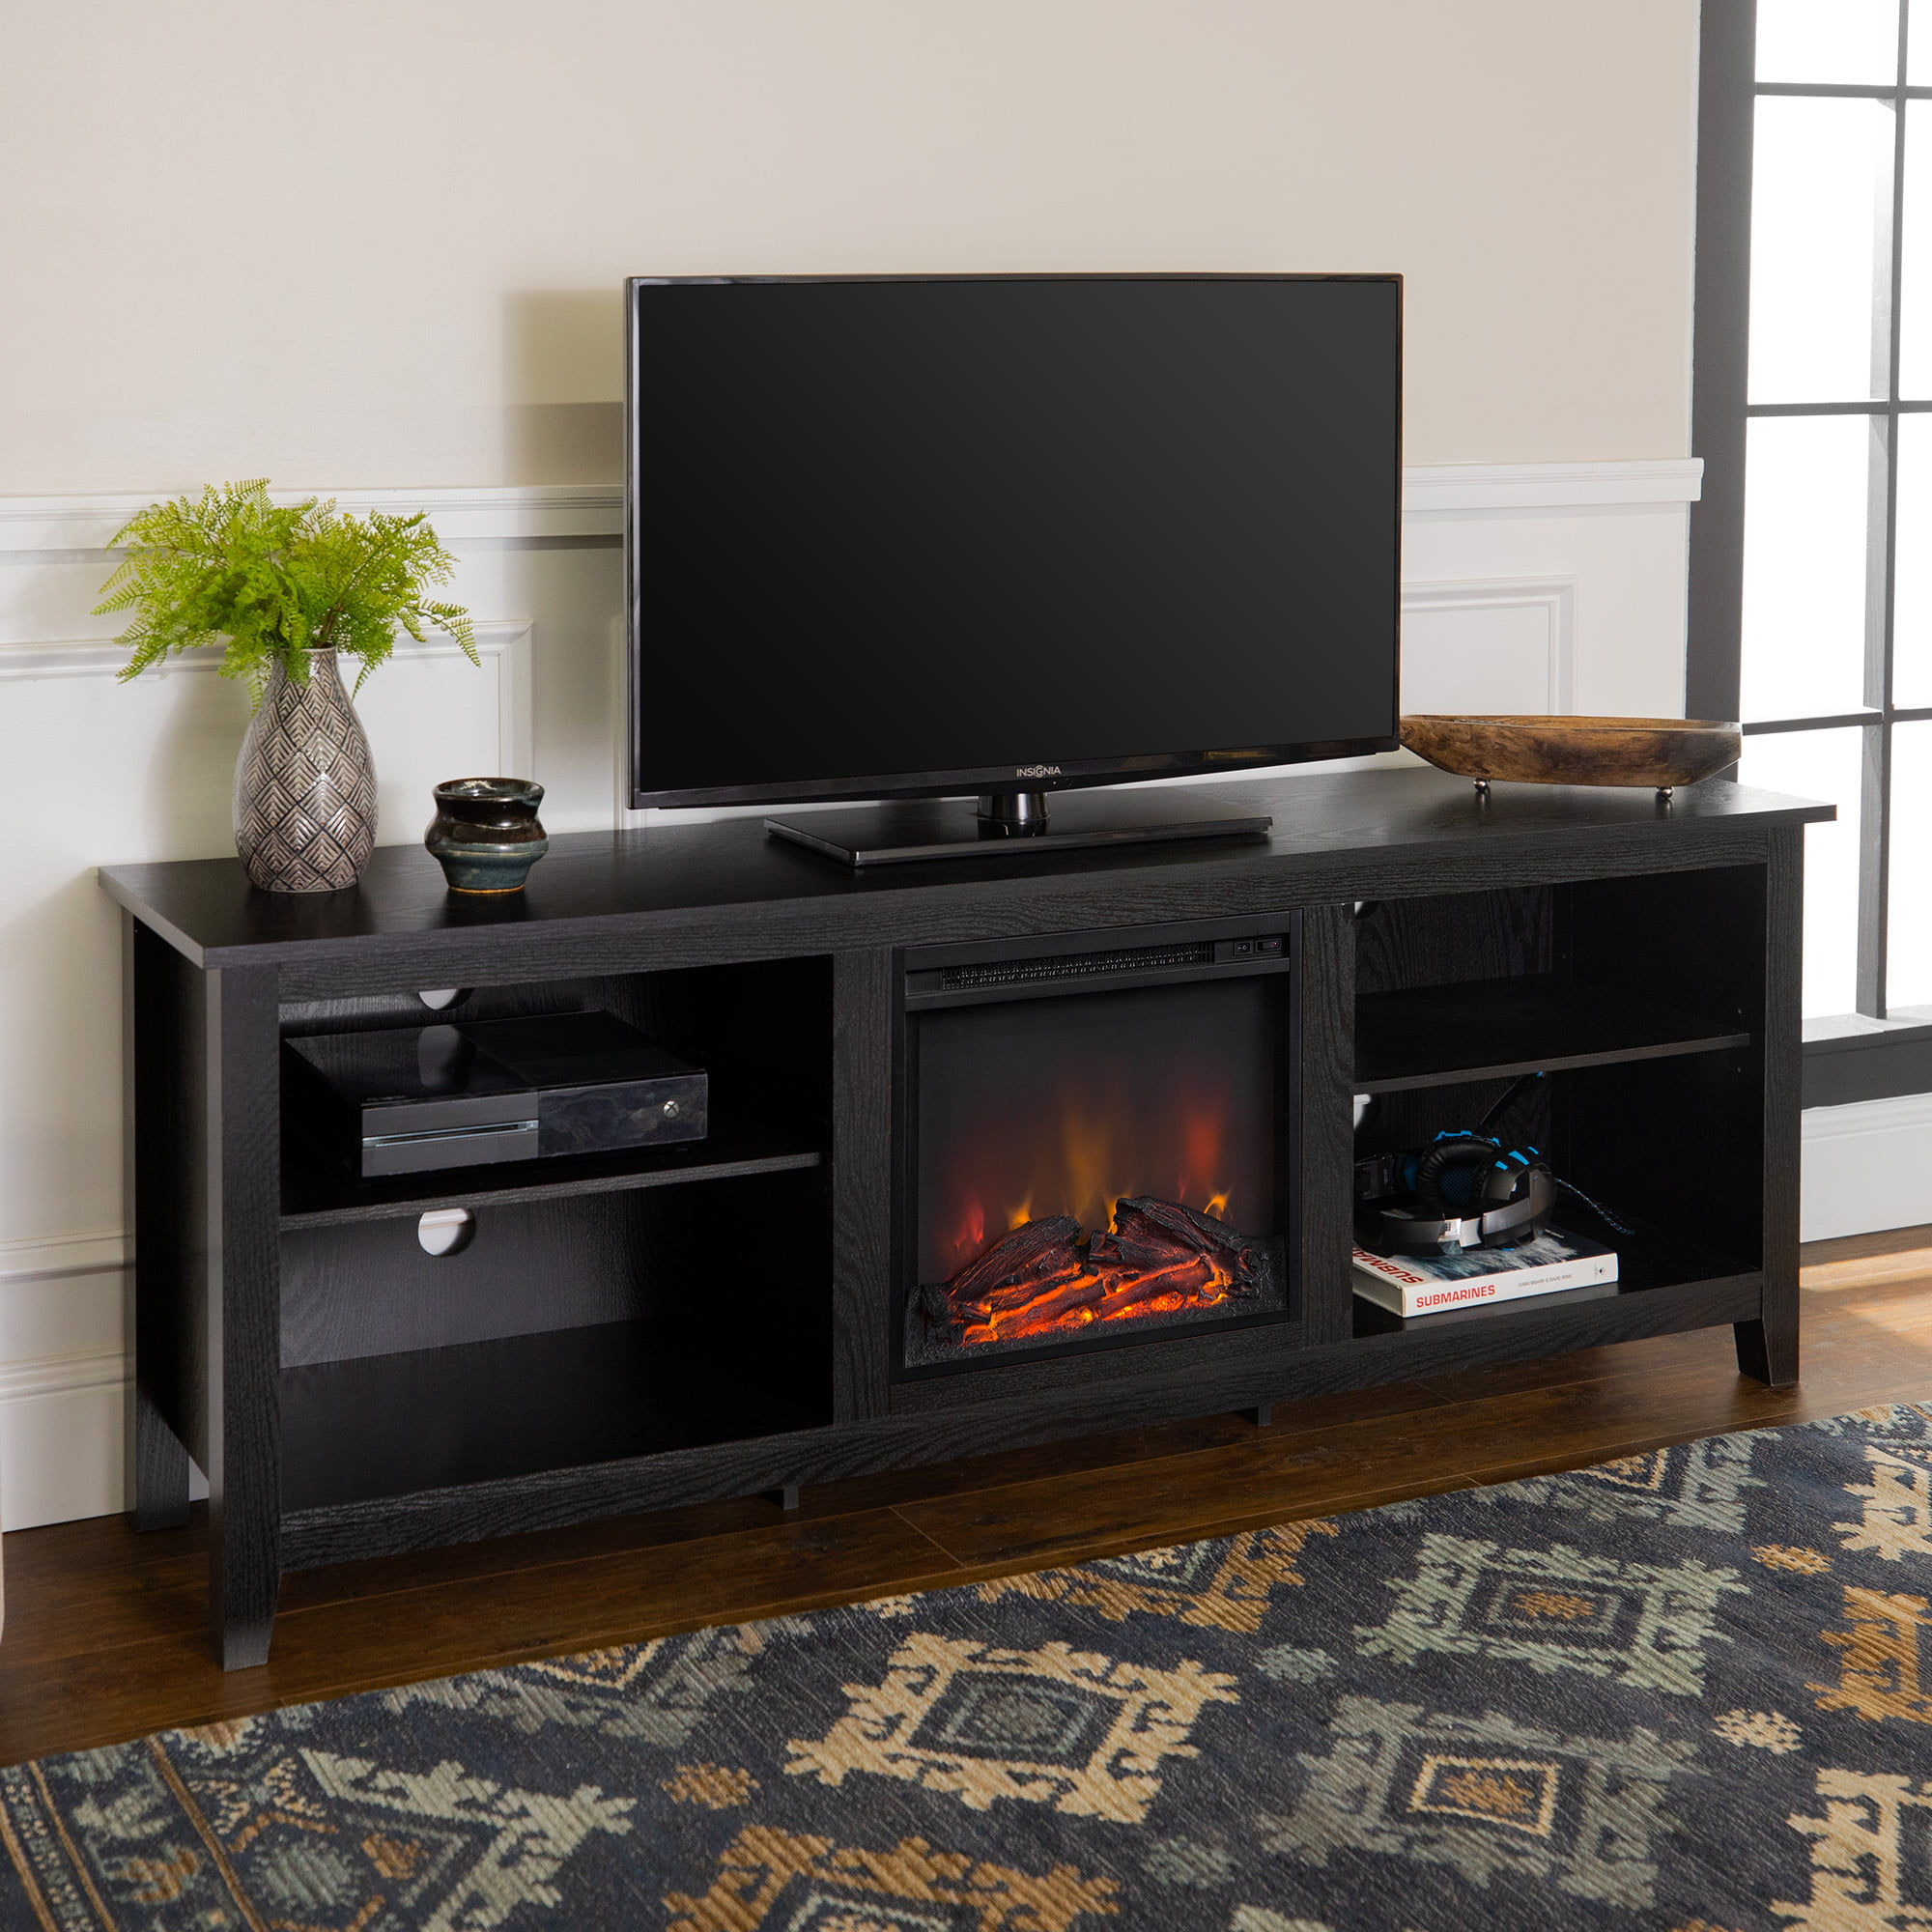 Woven Paths Open Storage Fireplace TV Stand for TVs up to 10